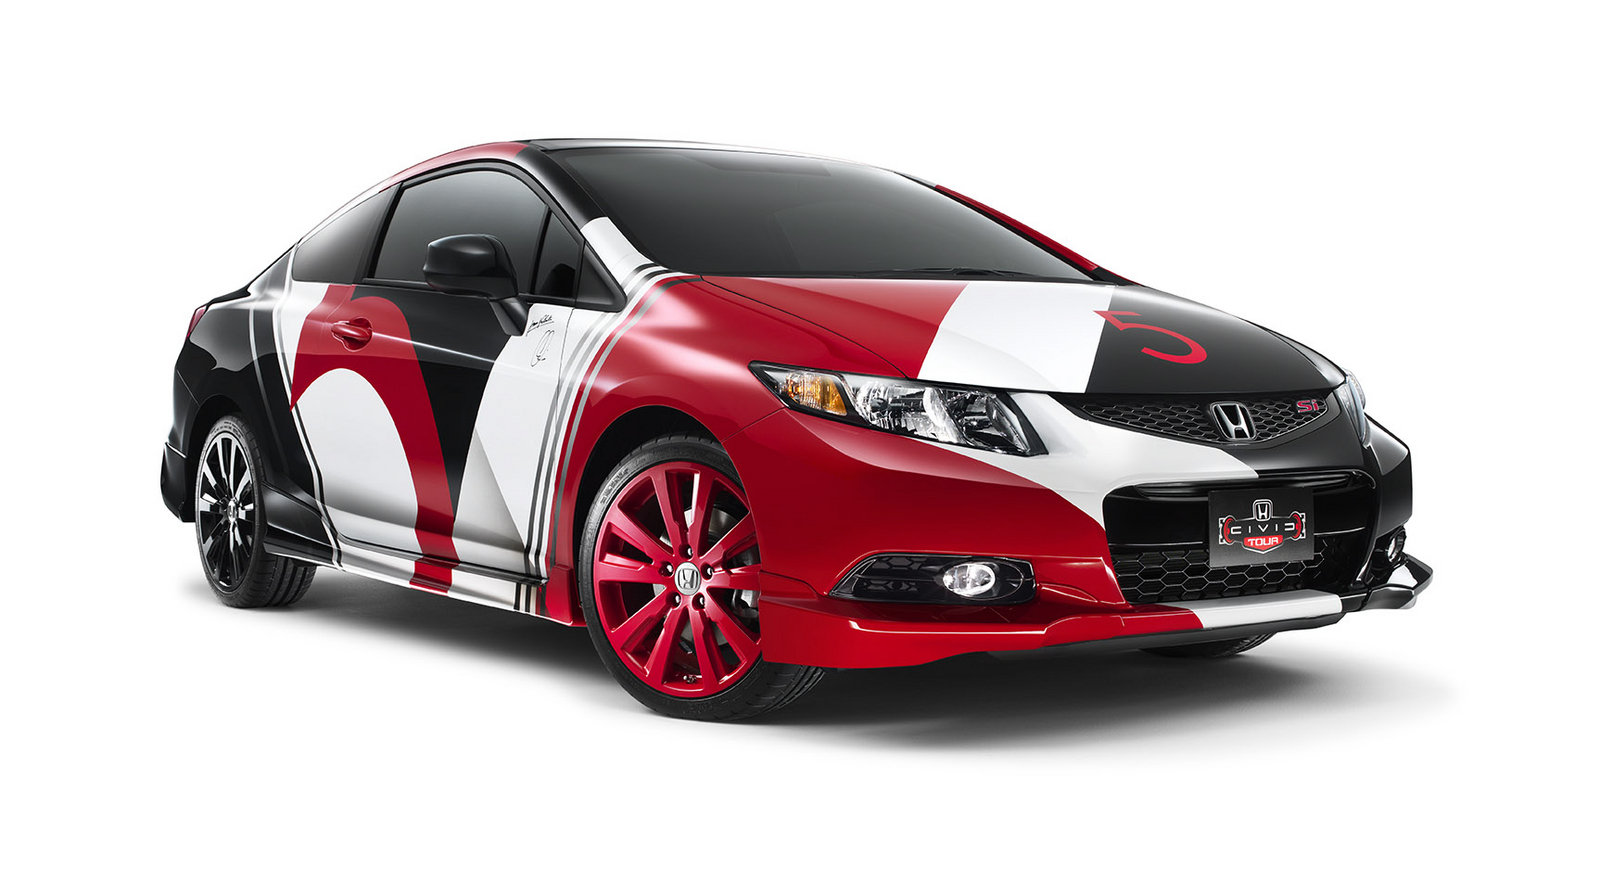 2013 Honda Civic Si Coupe By Maroon 5 | Top Speed